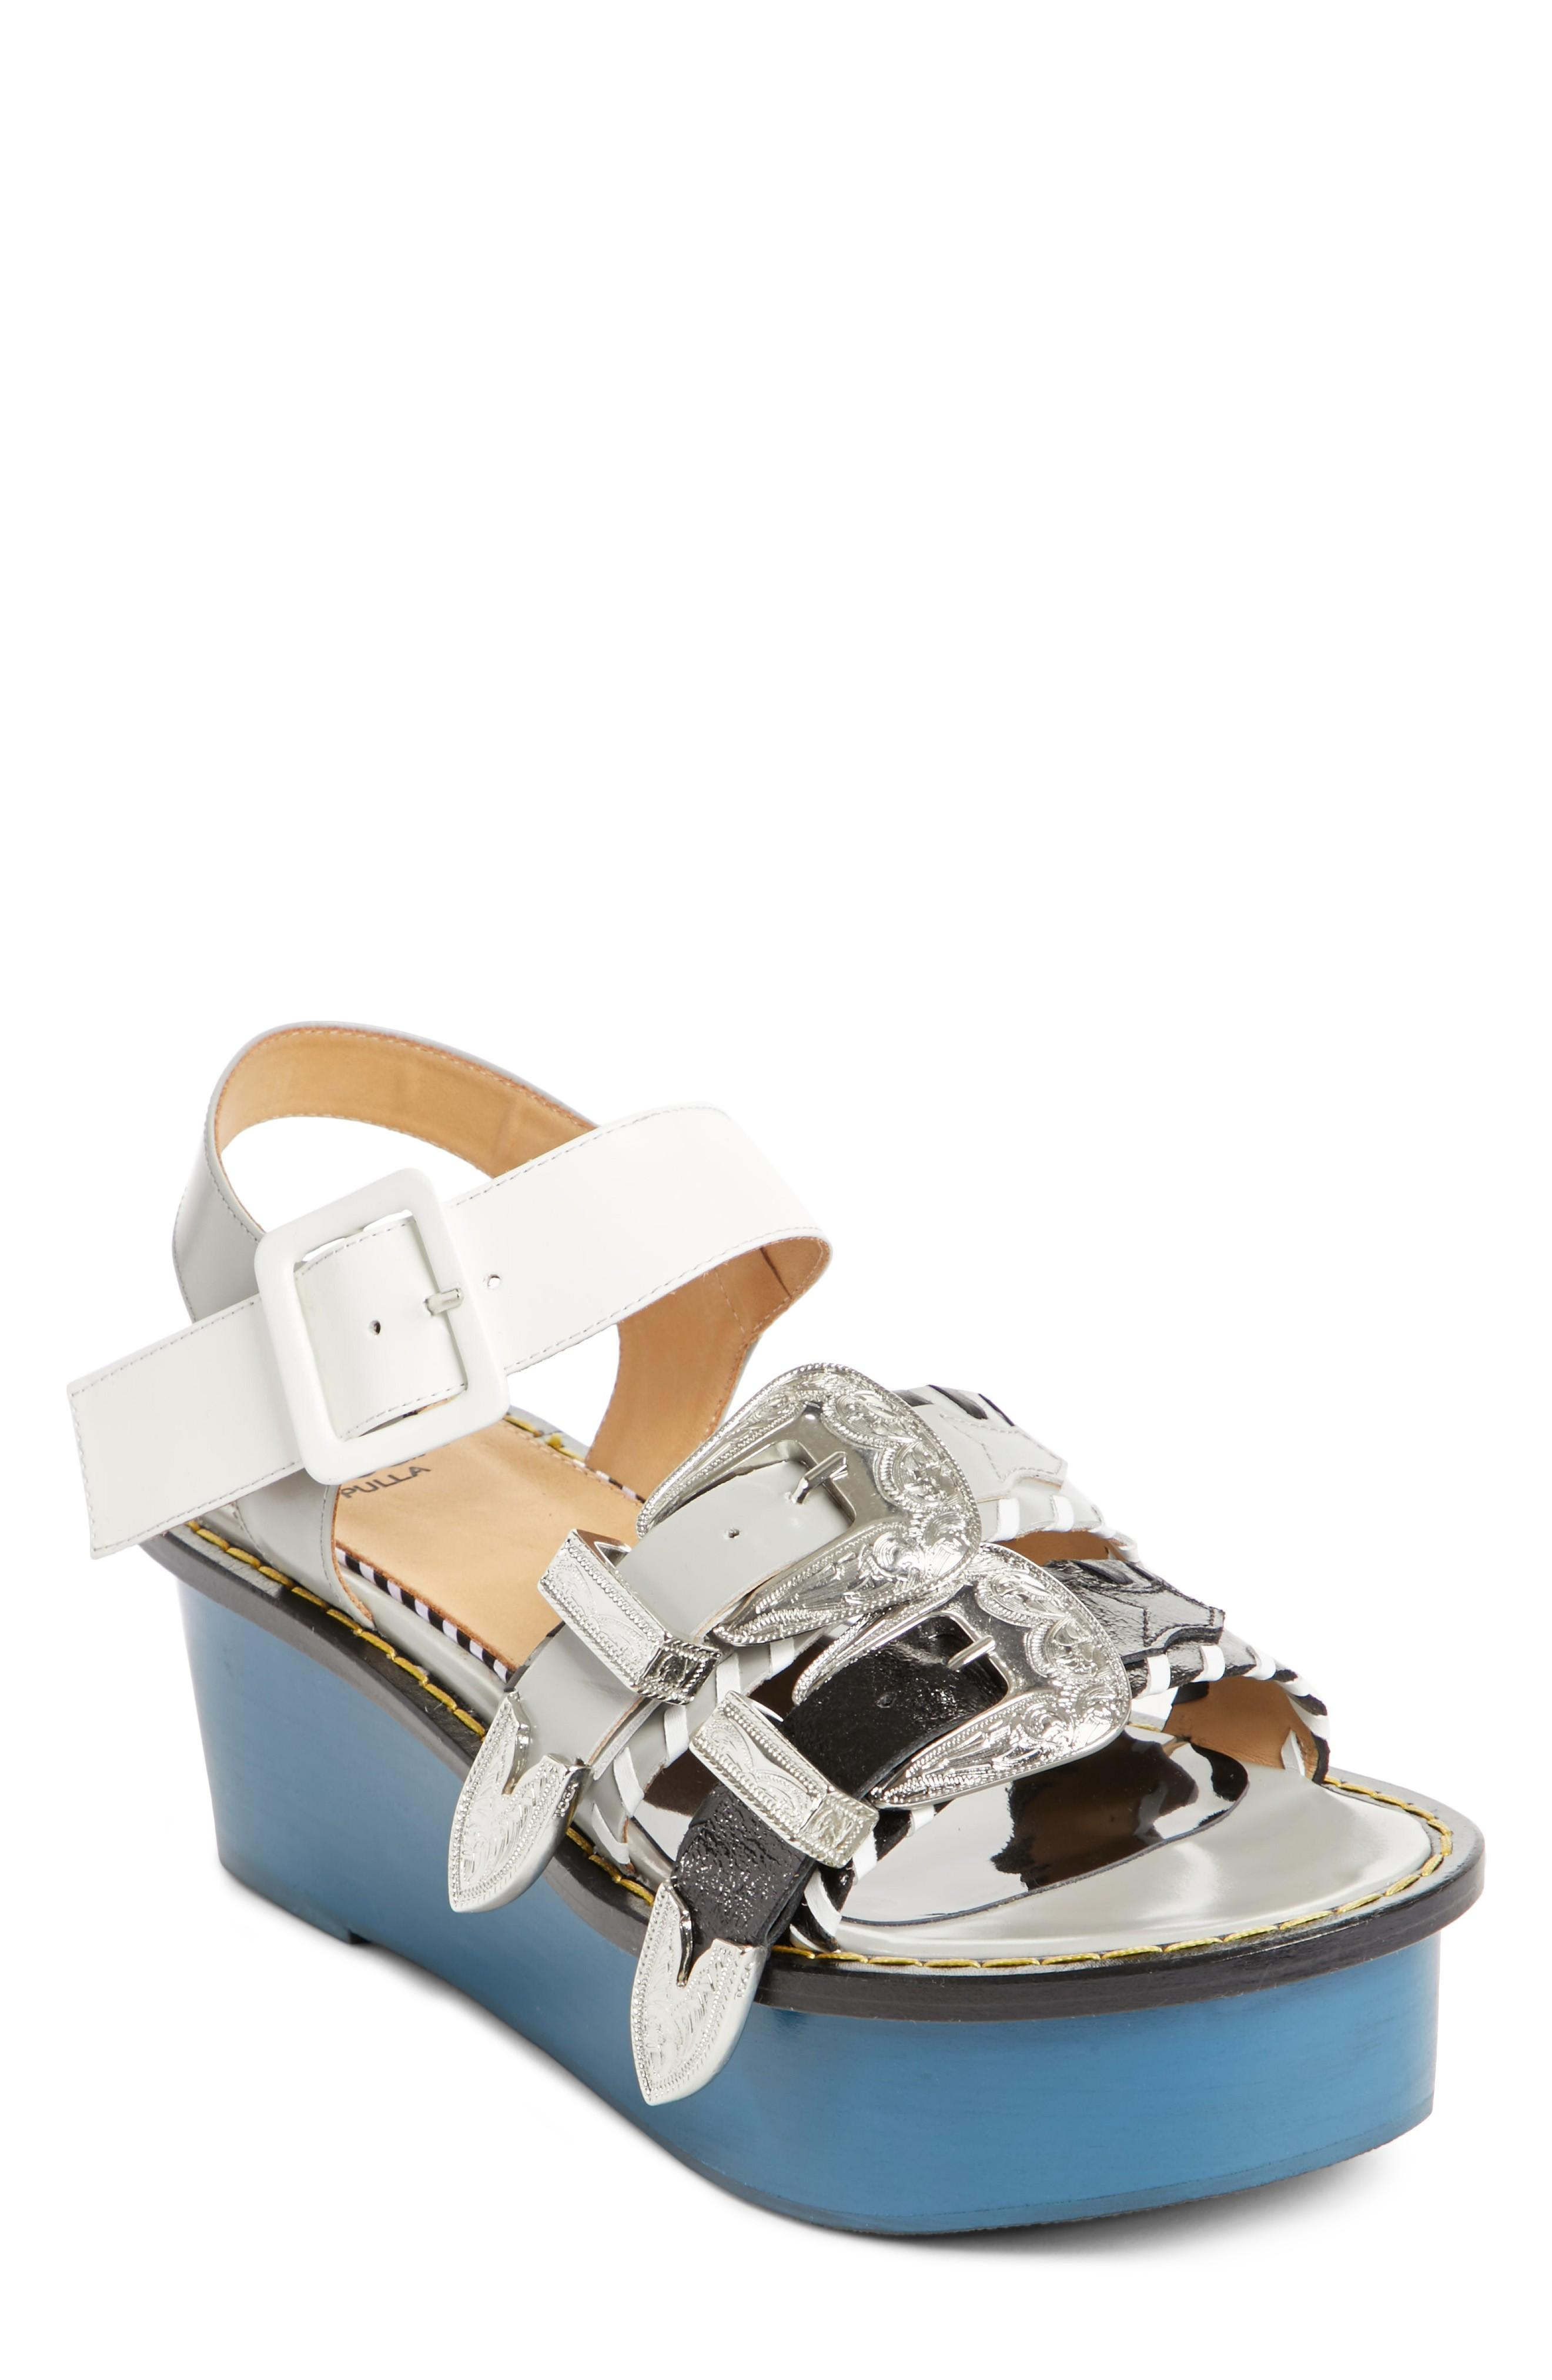 6bb9f6be16b9 Toga Colorblock Triple Strap Platform Sandal In Navy Mix